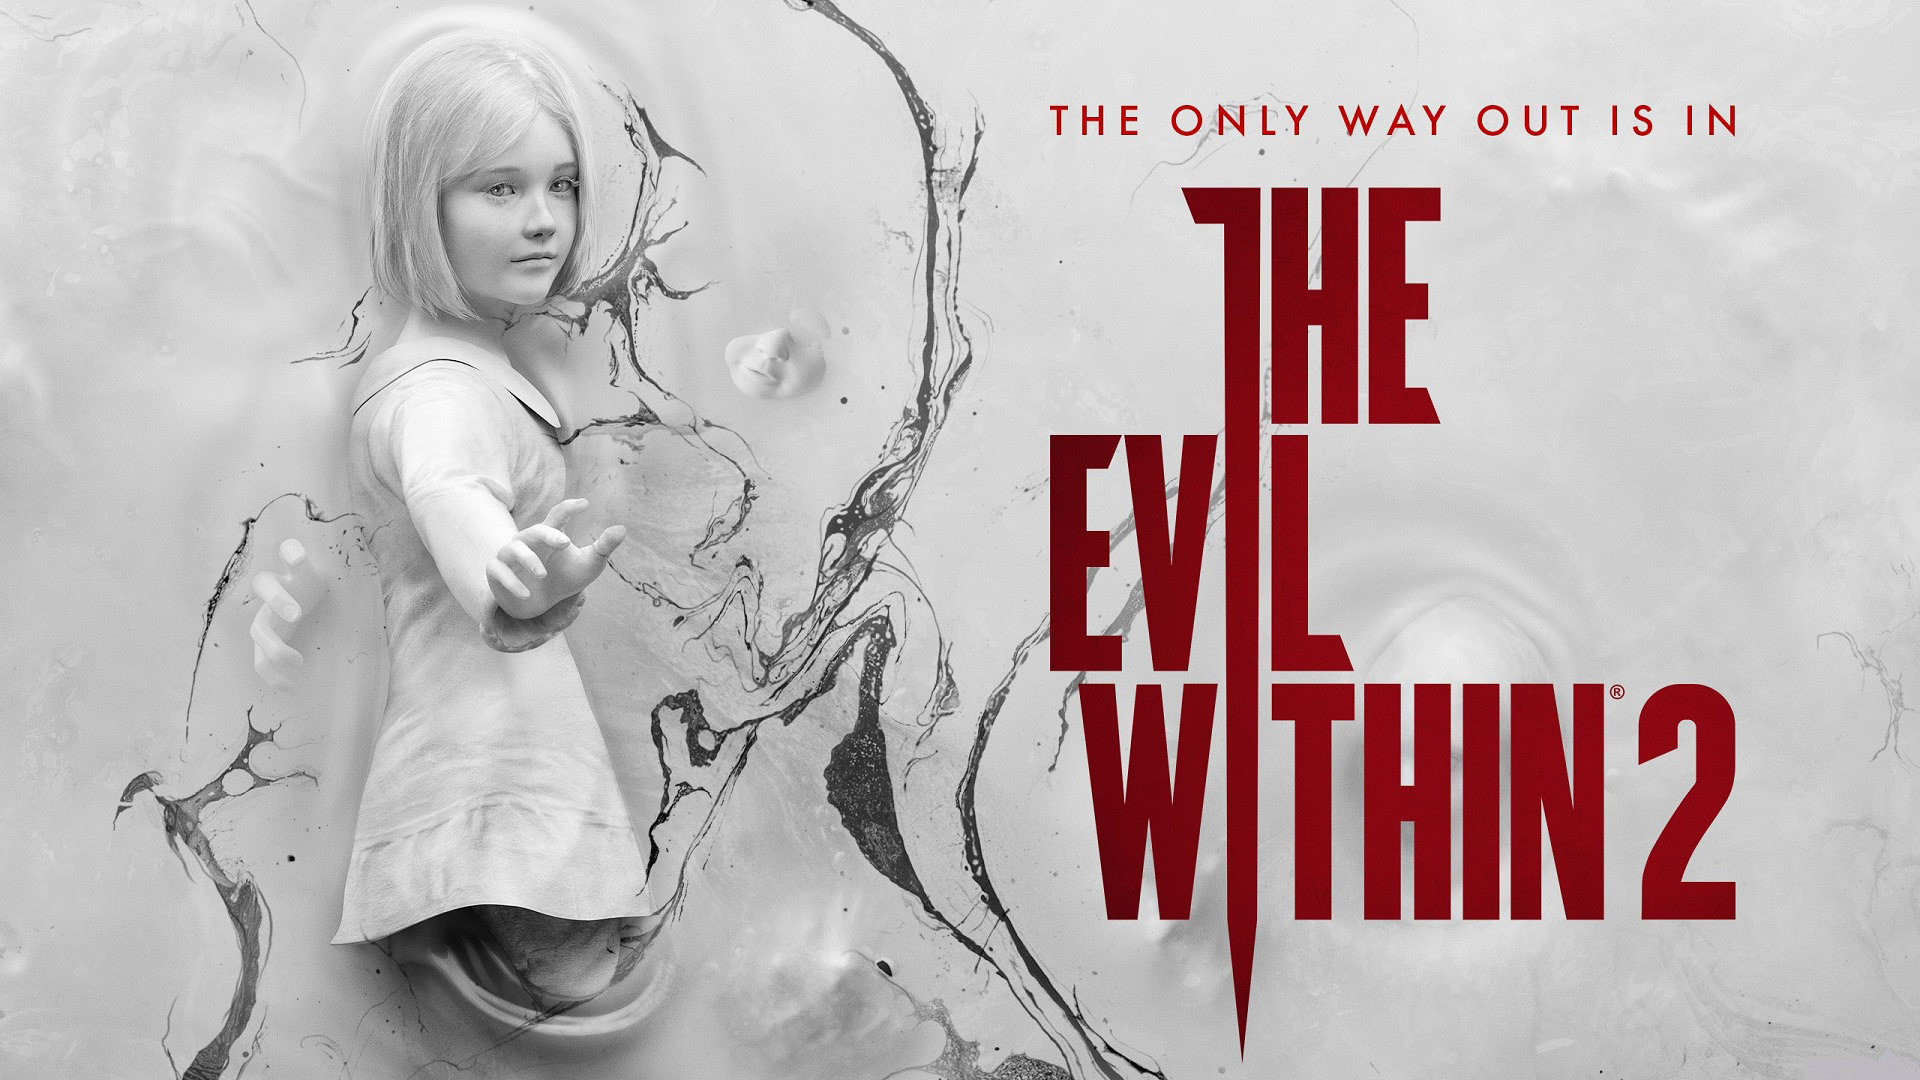 Free The Evil Within 2 Wallpaper in 1920x1080